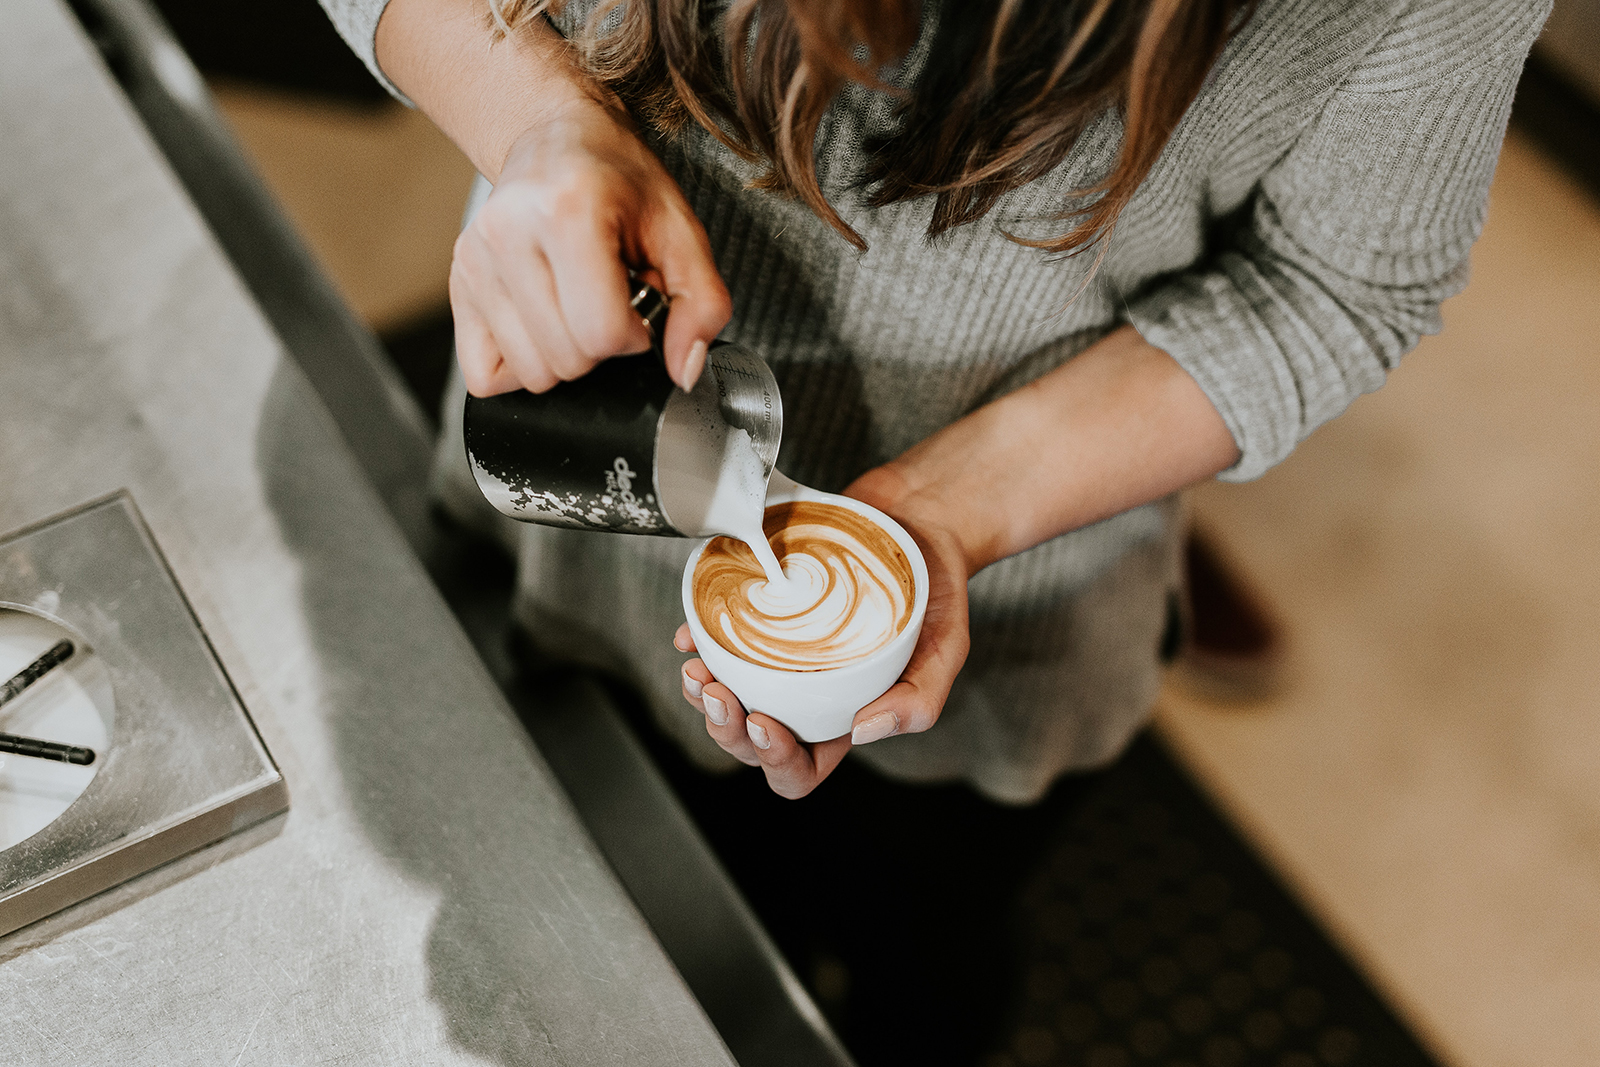 stock image f a barista pouring coffee